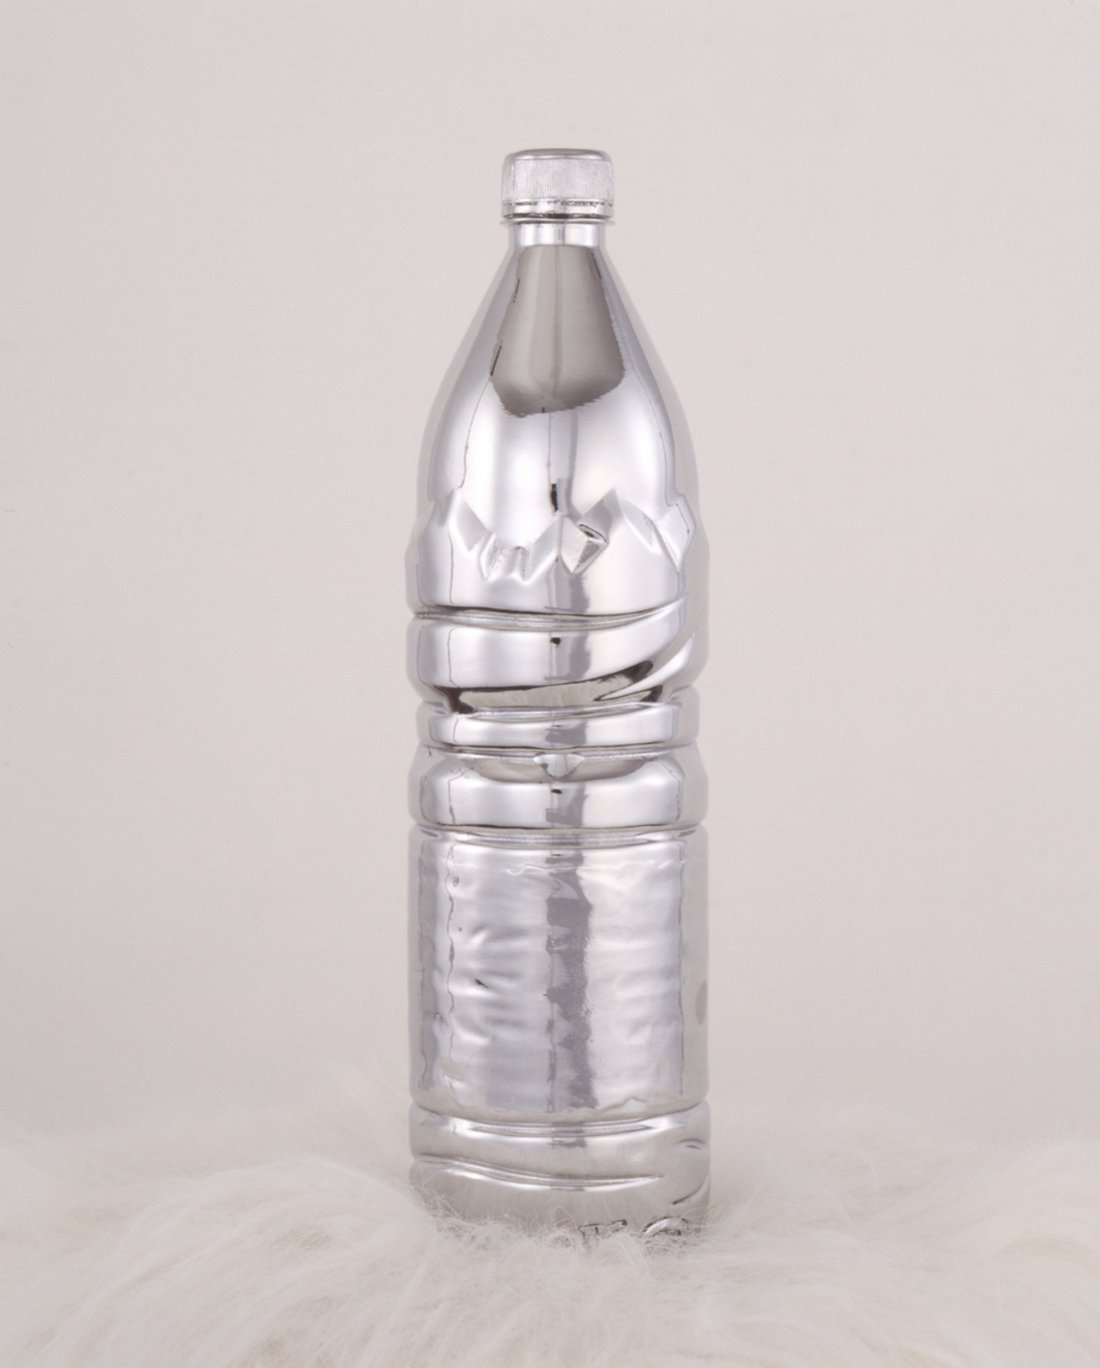 Sylvie Fleury, Evian Bottle, 1998